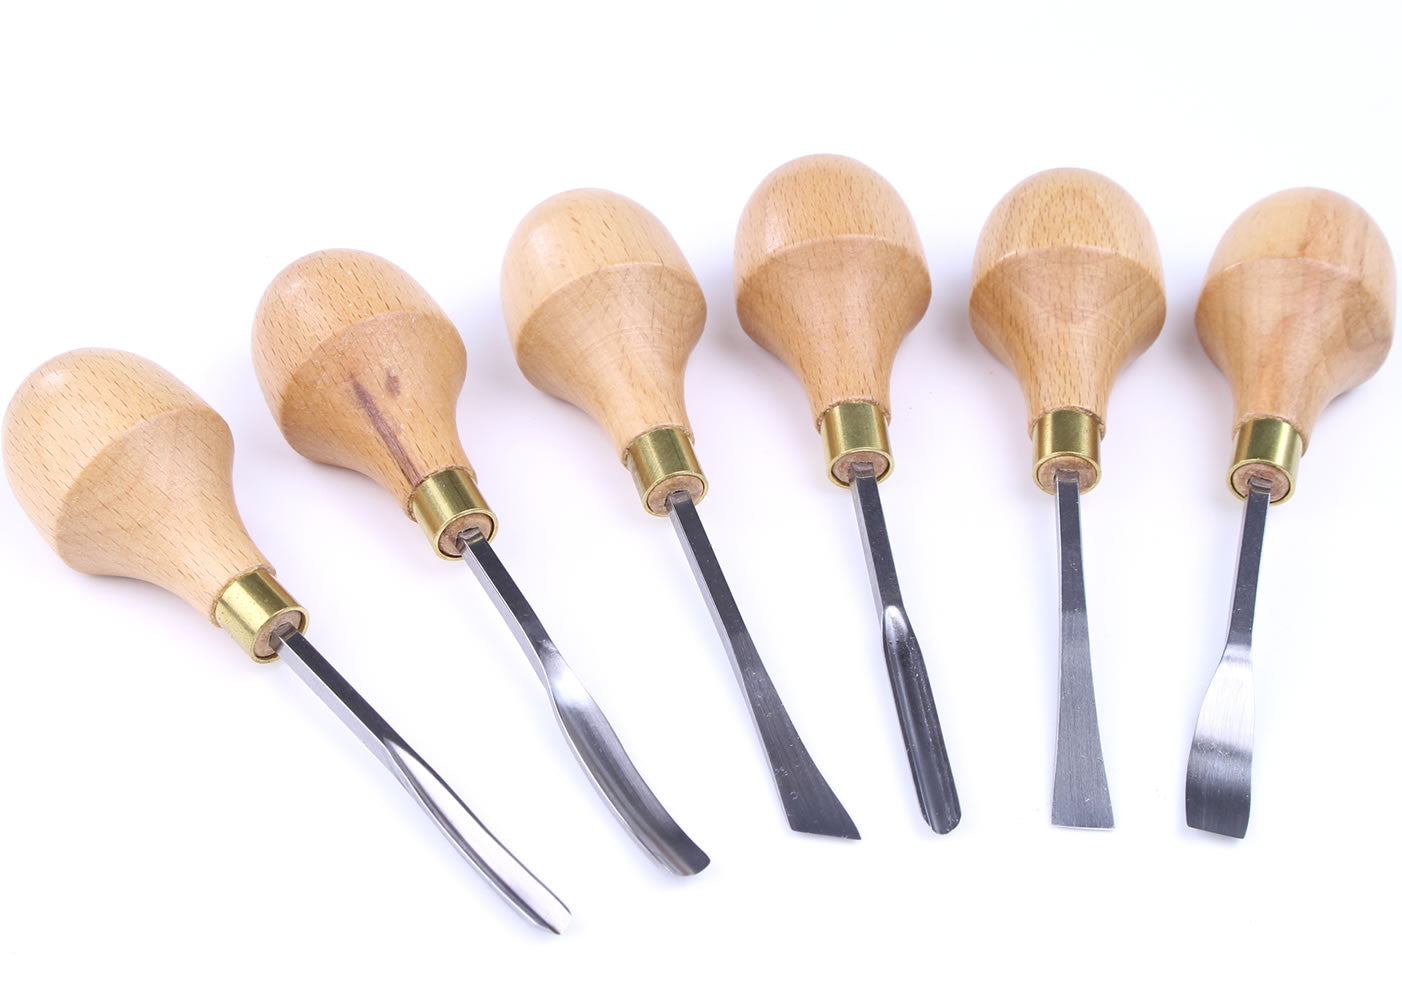 Henry Taylor Supersharp Carving Tools Set